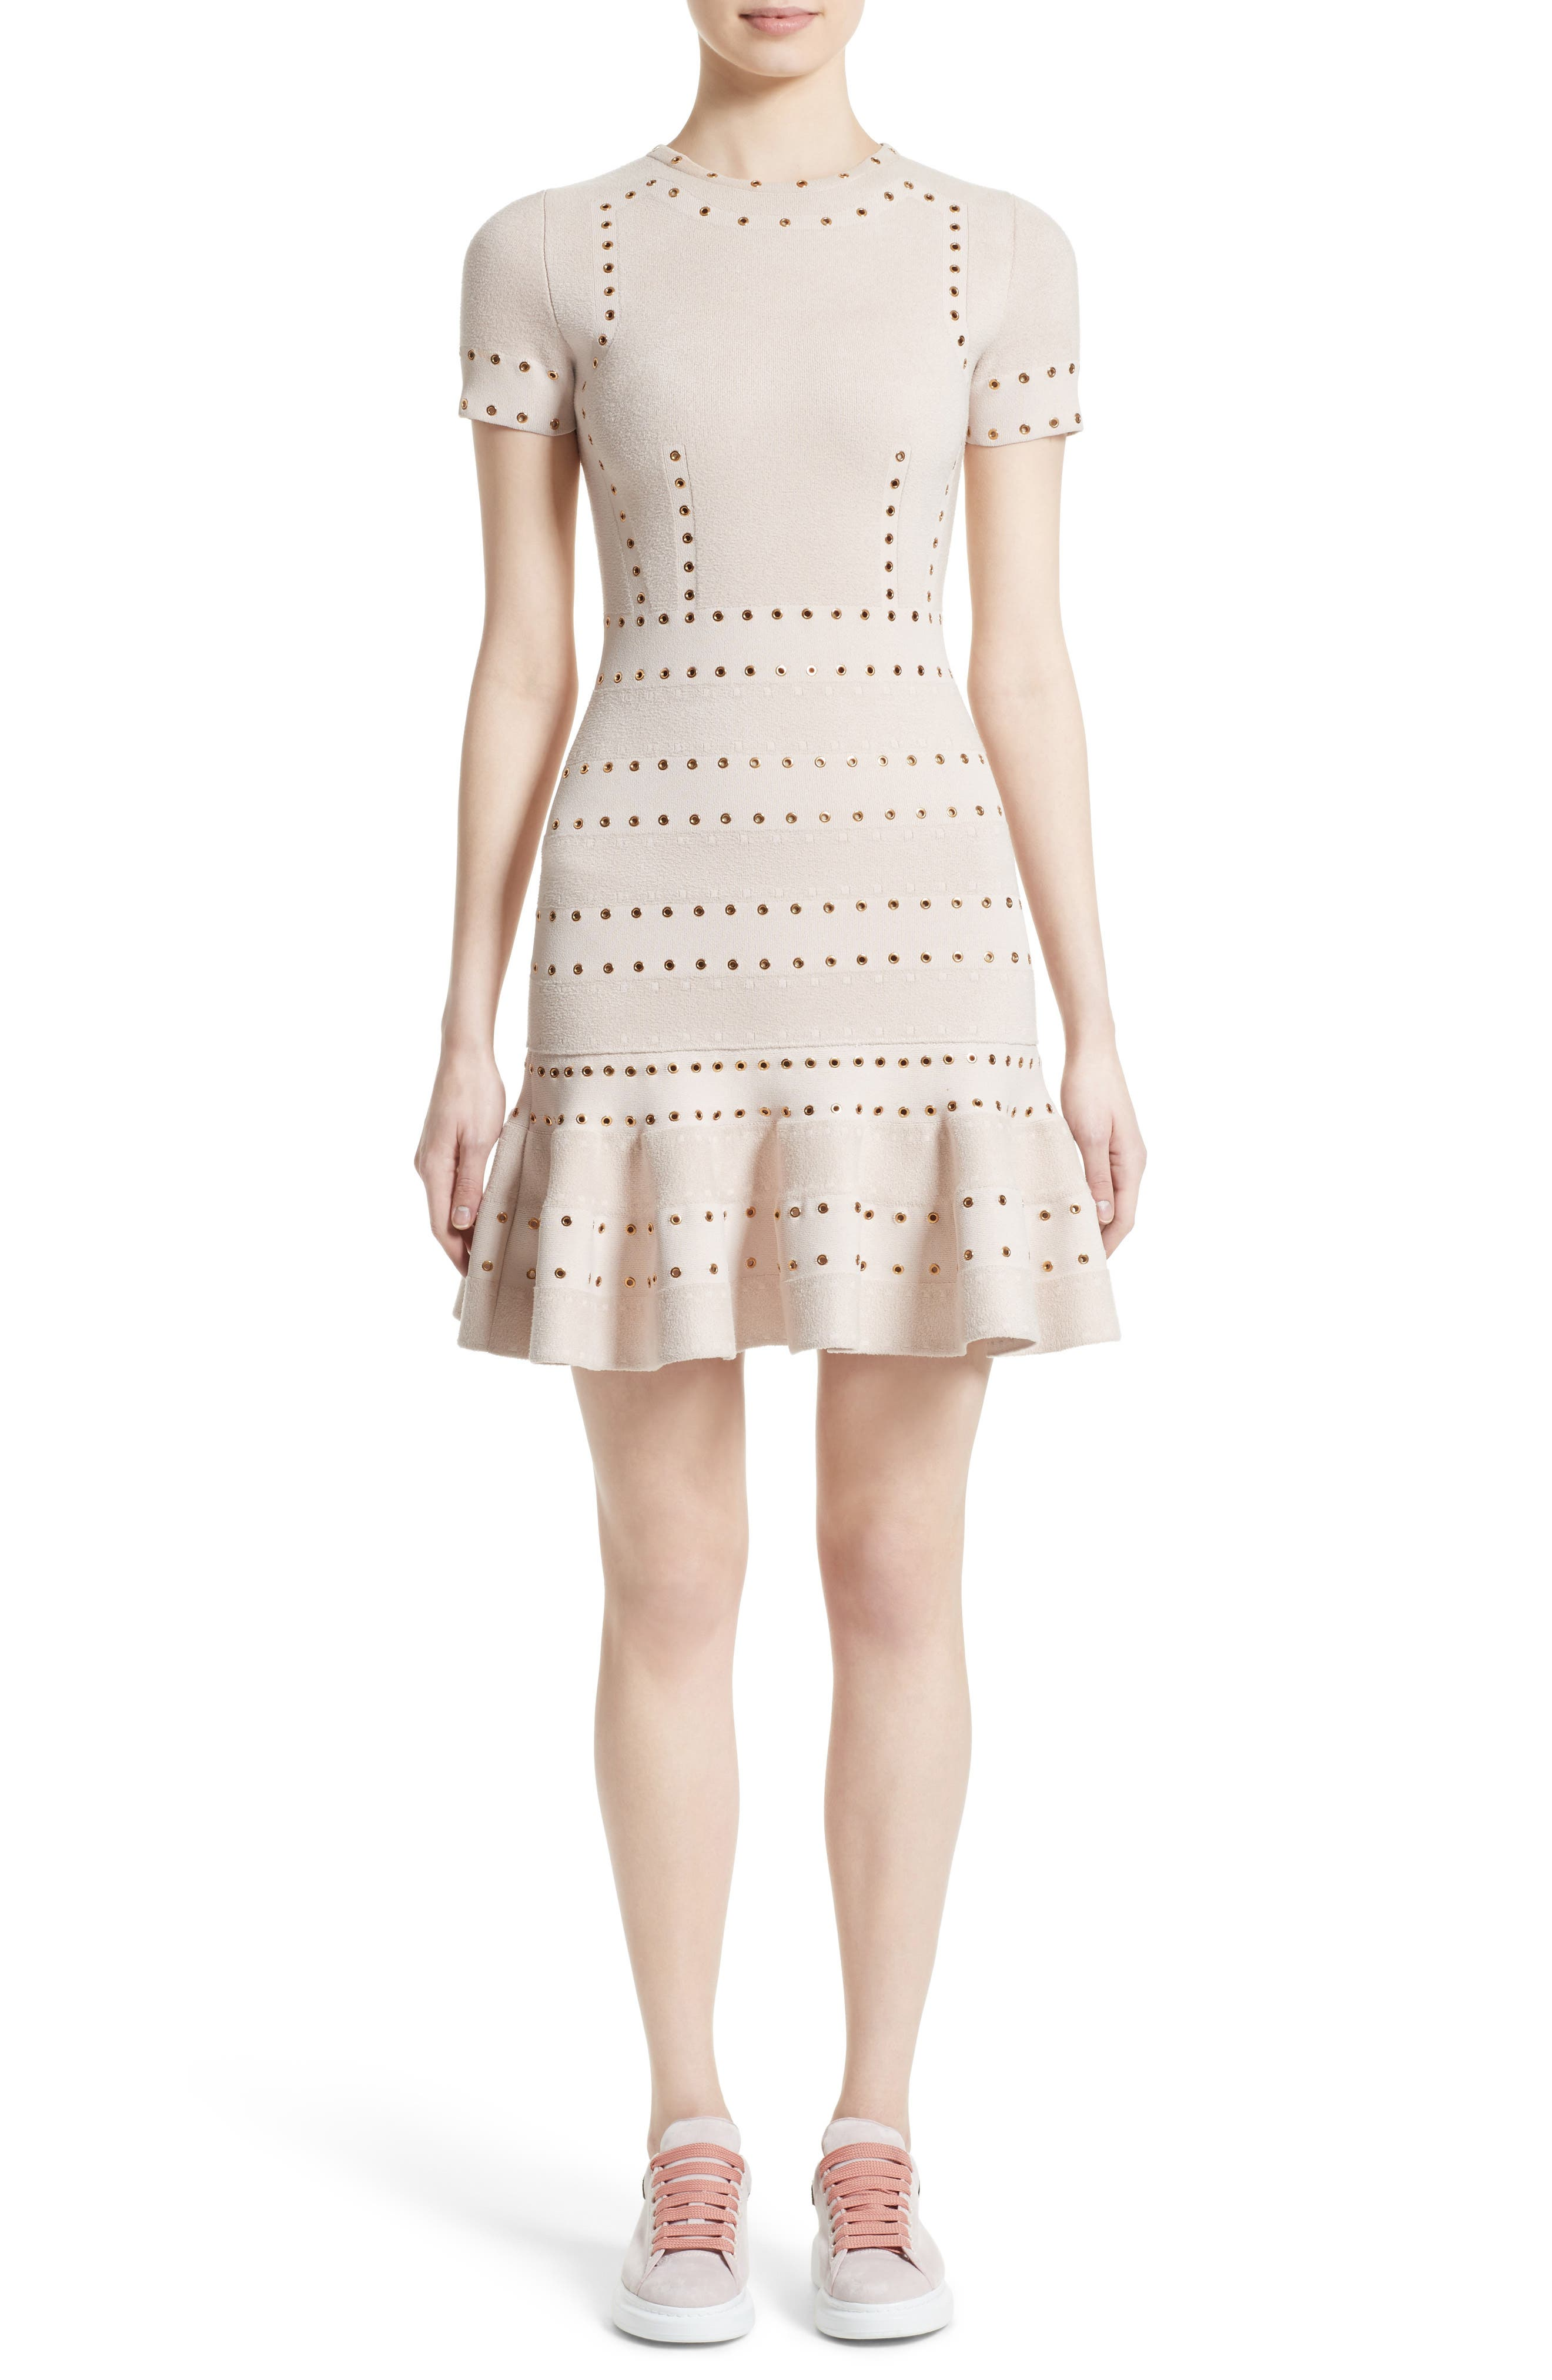 Alexander McQueen Eyelet Detail Knit Dress